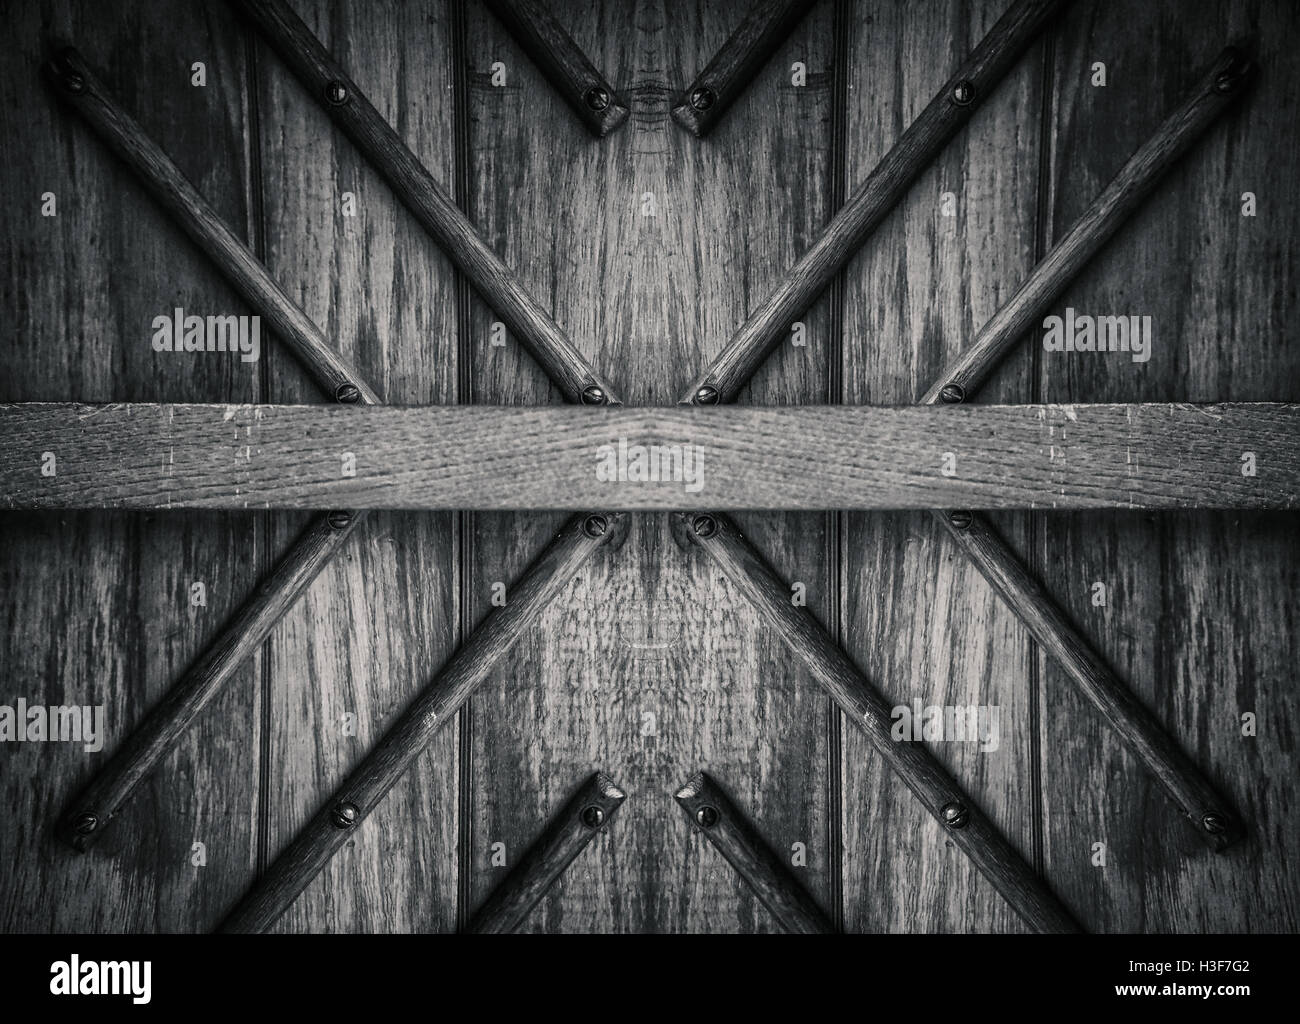 An abstract wooden and symmetric background texture. - Stock Image